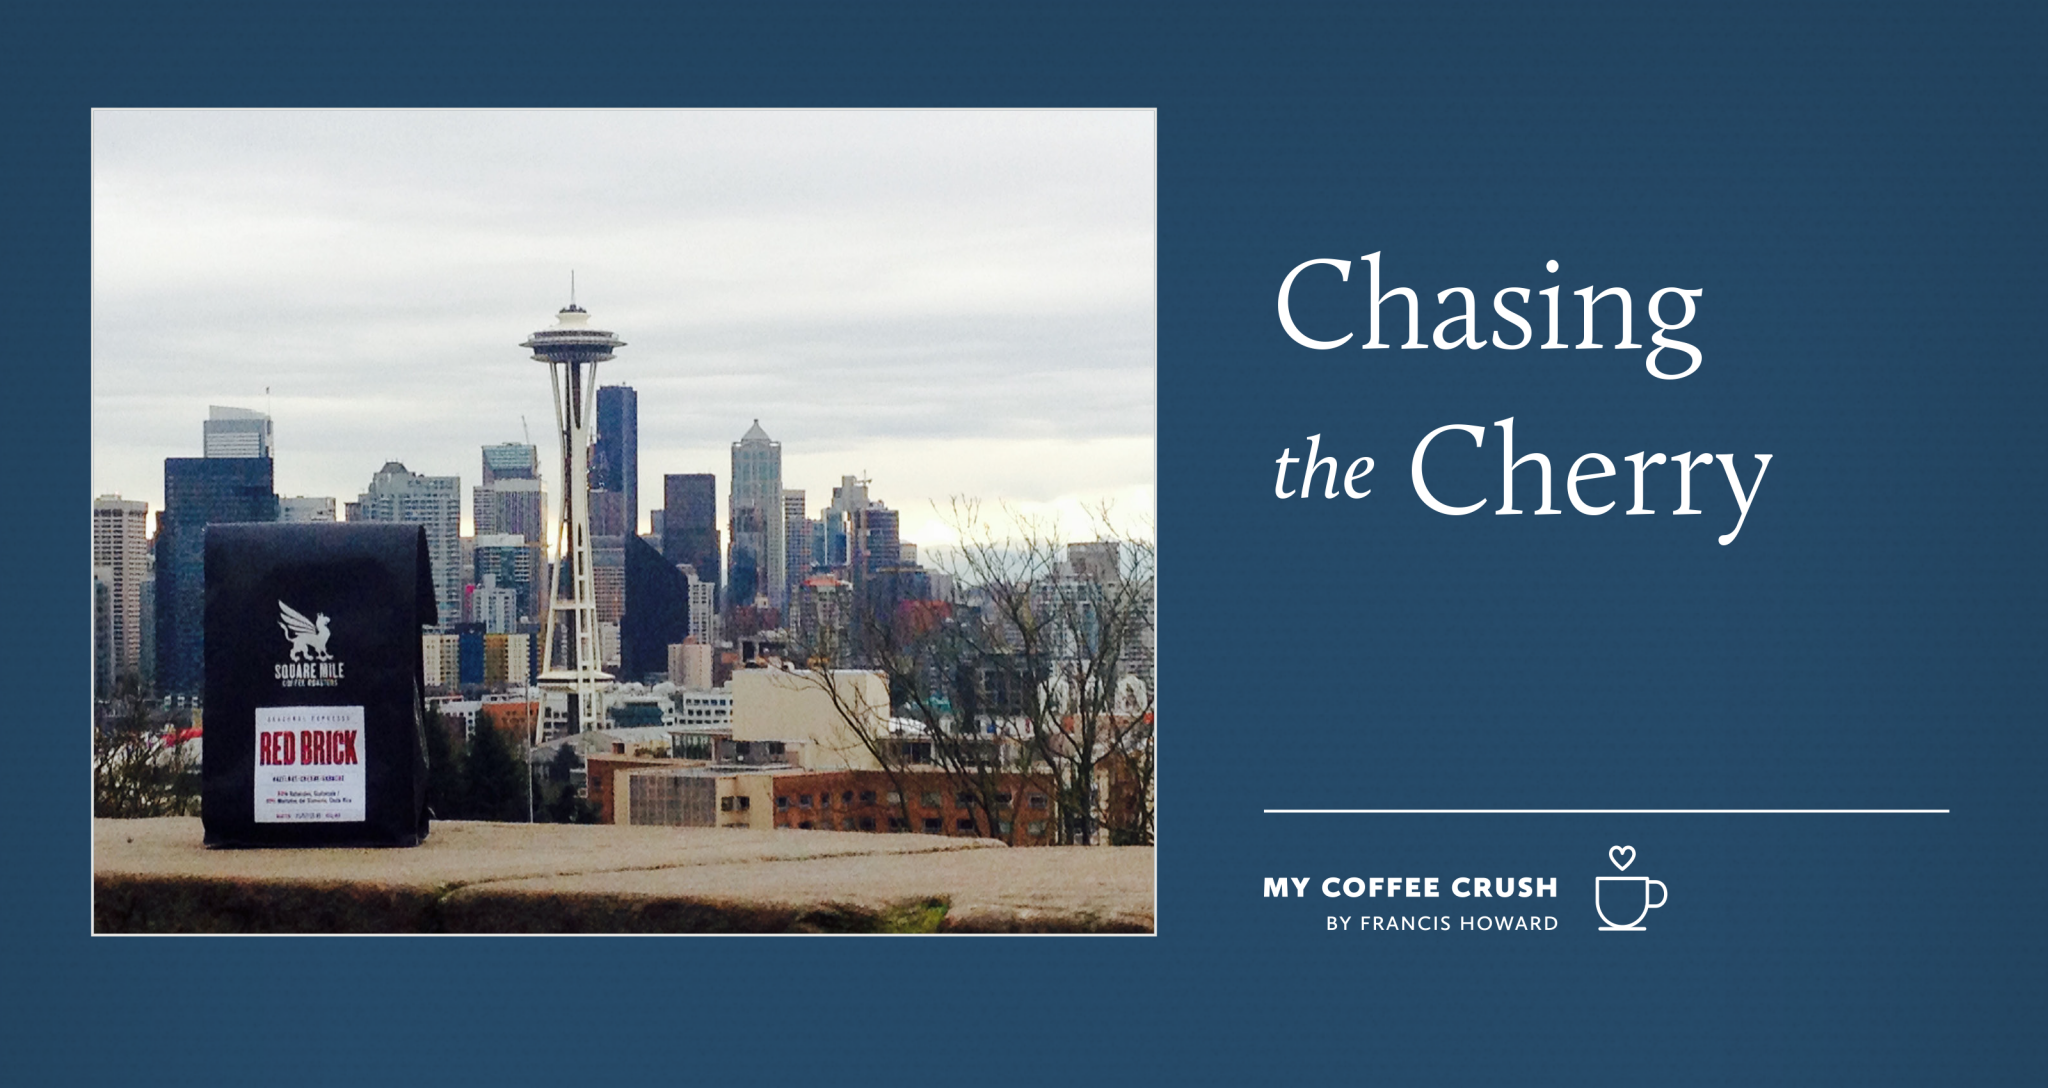 My Coffee Crush - Chasing the Cherry - Francis Howard - Coffee Lovers Magazine Issue 46